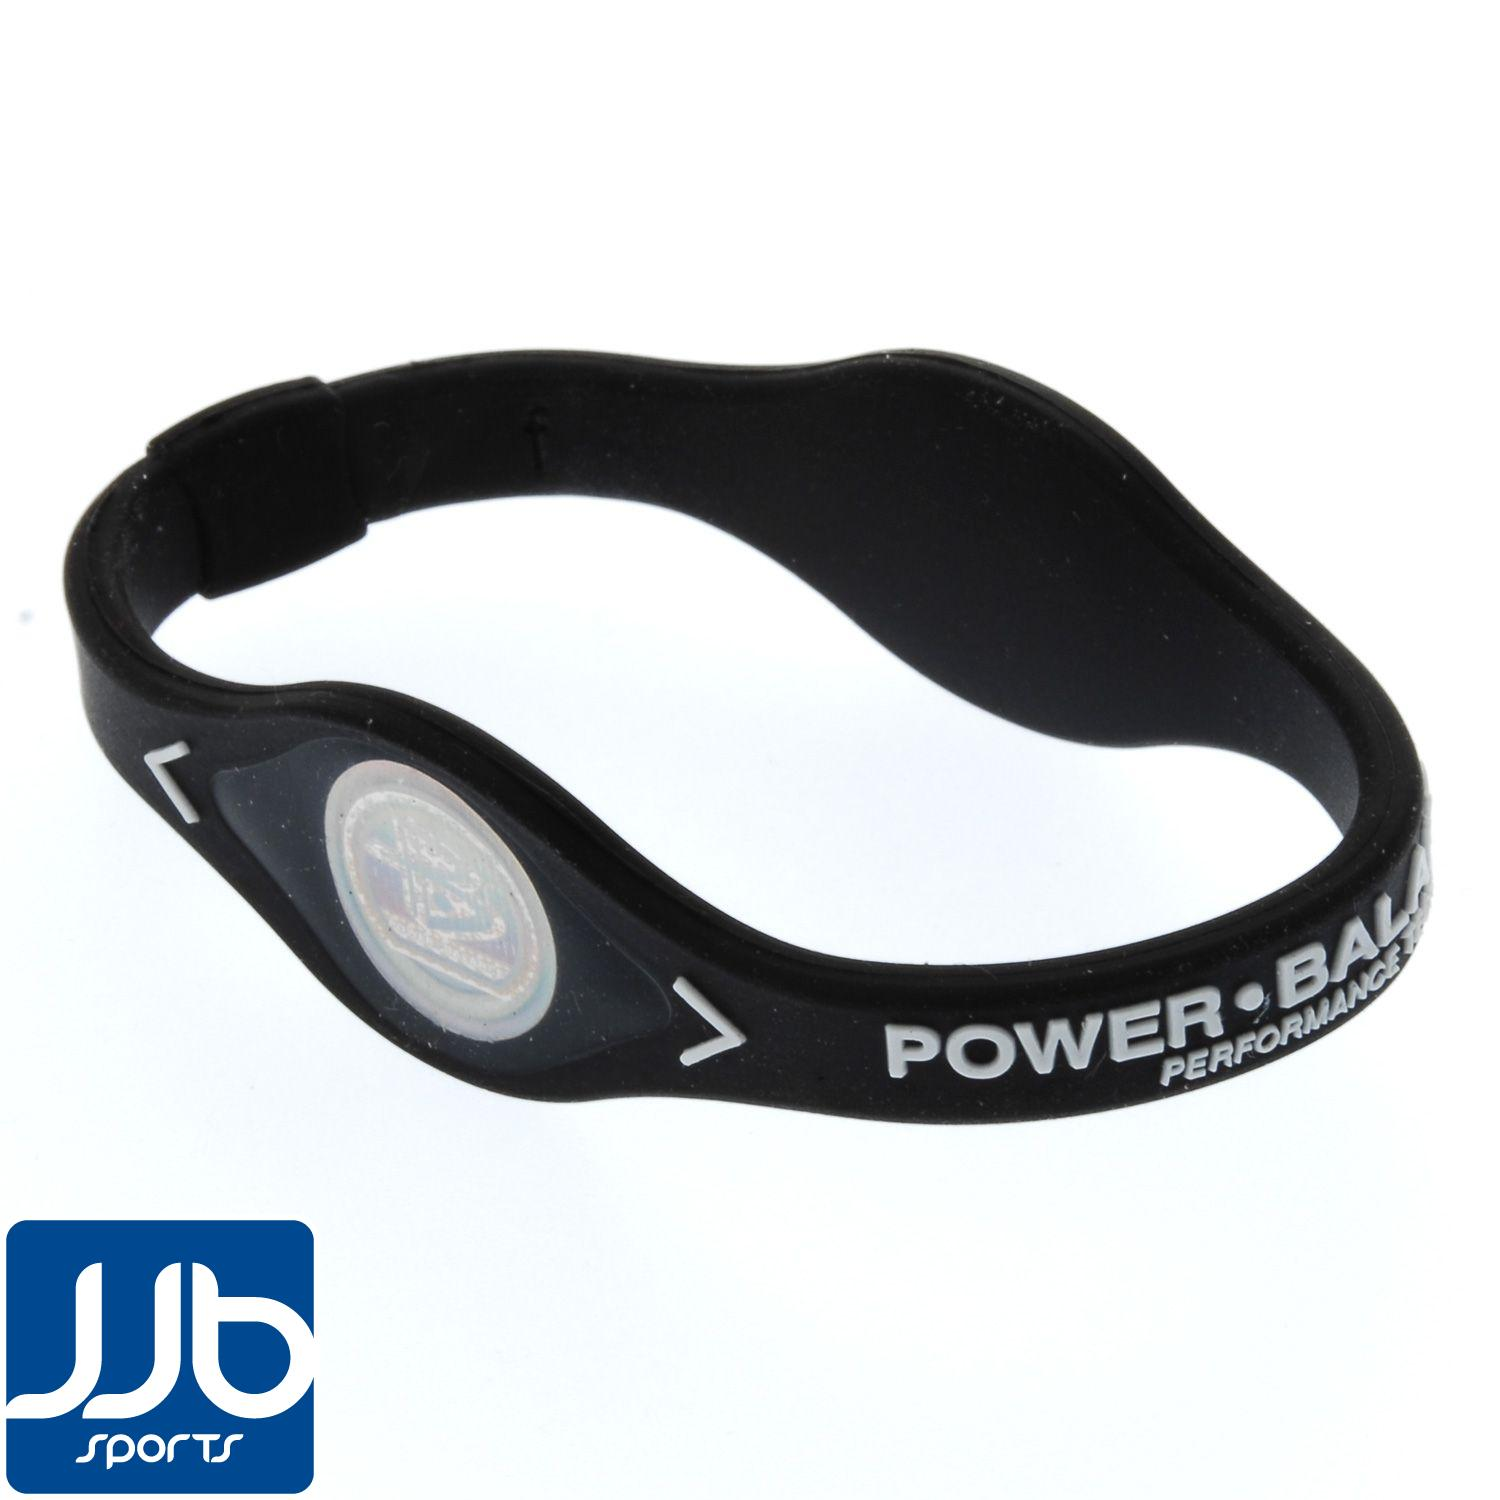 power balance wristband ebay. Black Bedroom Furniture Sets. Home Design Ideas